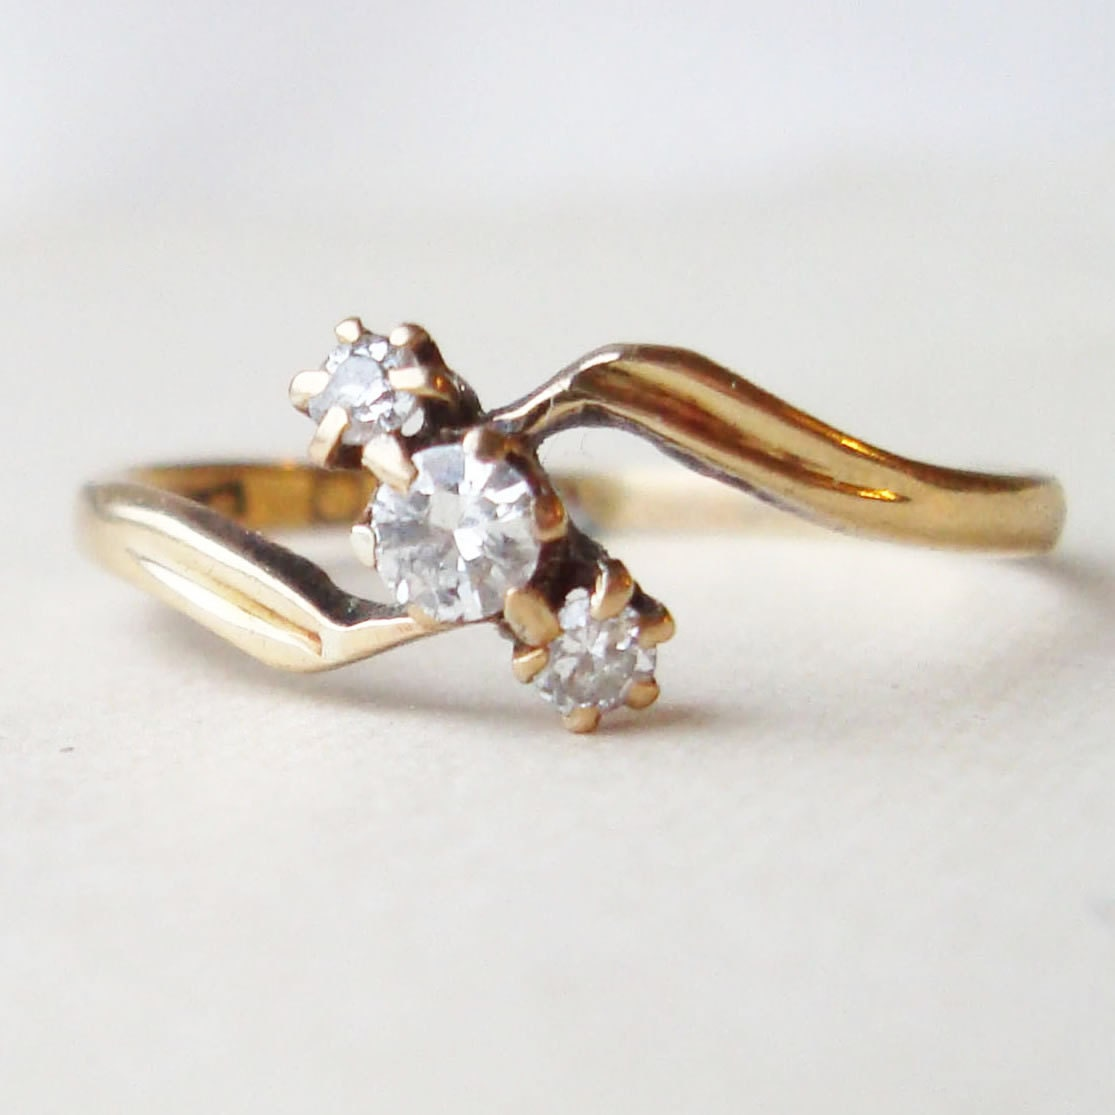 Antique engagement rings is an engagement ring is produced in the past. Antique engagement rings are a limited stock